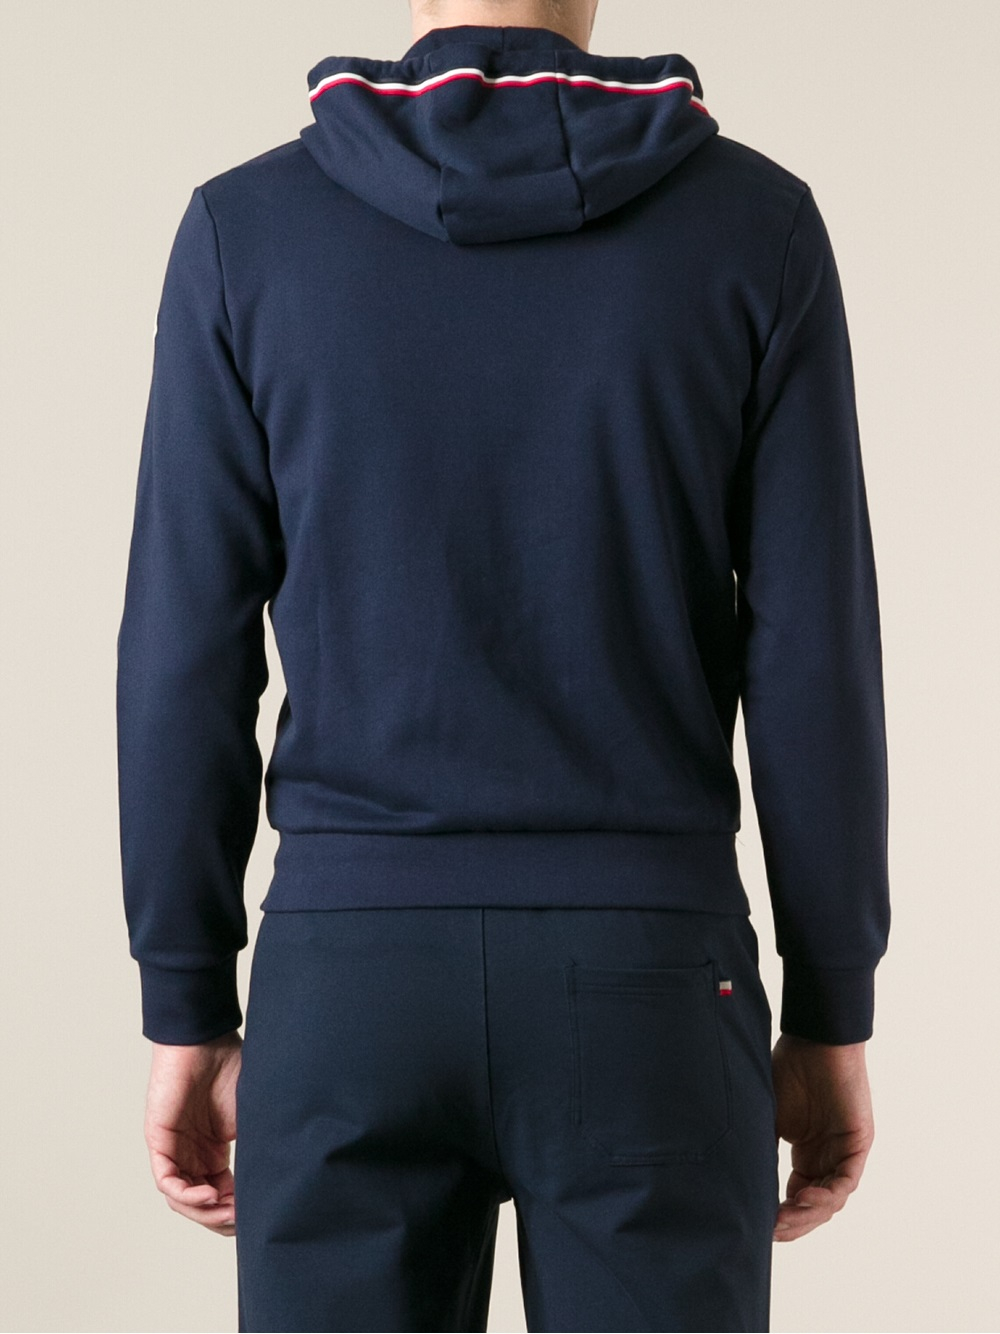 Adidas Pullover Sweatshirt Lyst Moncler Drawstring Hoodie In Blue For Men